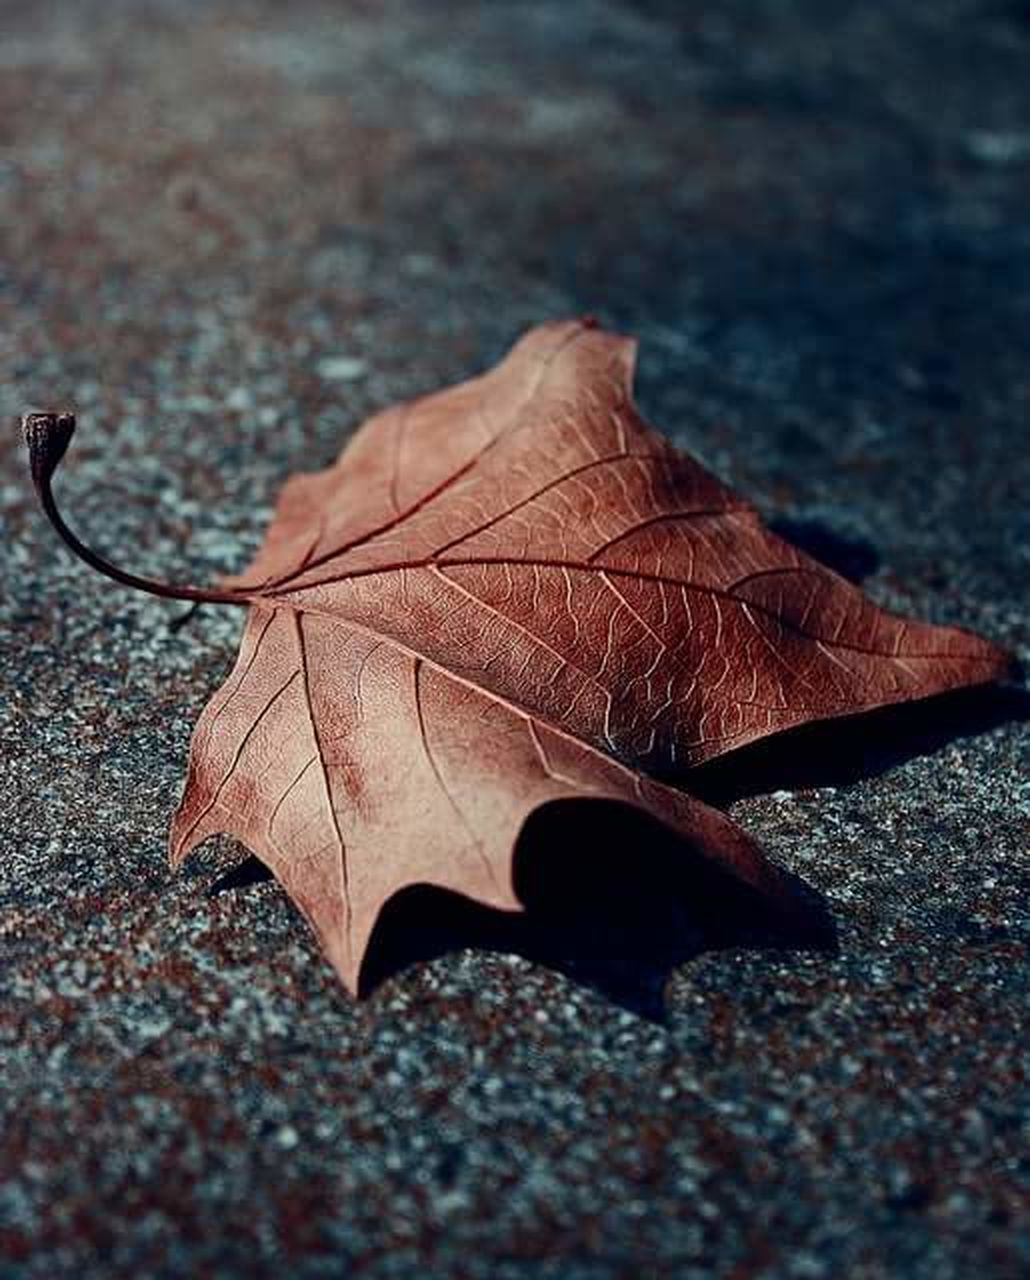 plant part, autumn, leaf, dry, change, close-up, no people, nature, maple leaf, leaf vein, selective focus, falling, fragility, vulnerability, day, brown, outdoors, footpath, textured, single object, natural condition, leaves, surface level, autumn collection